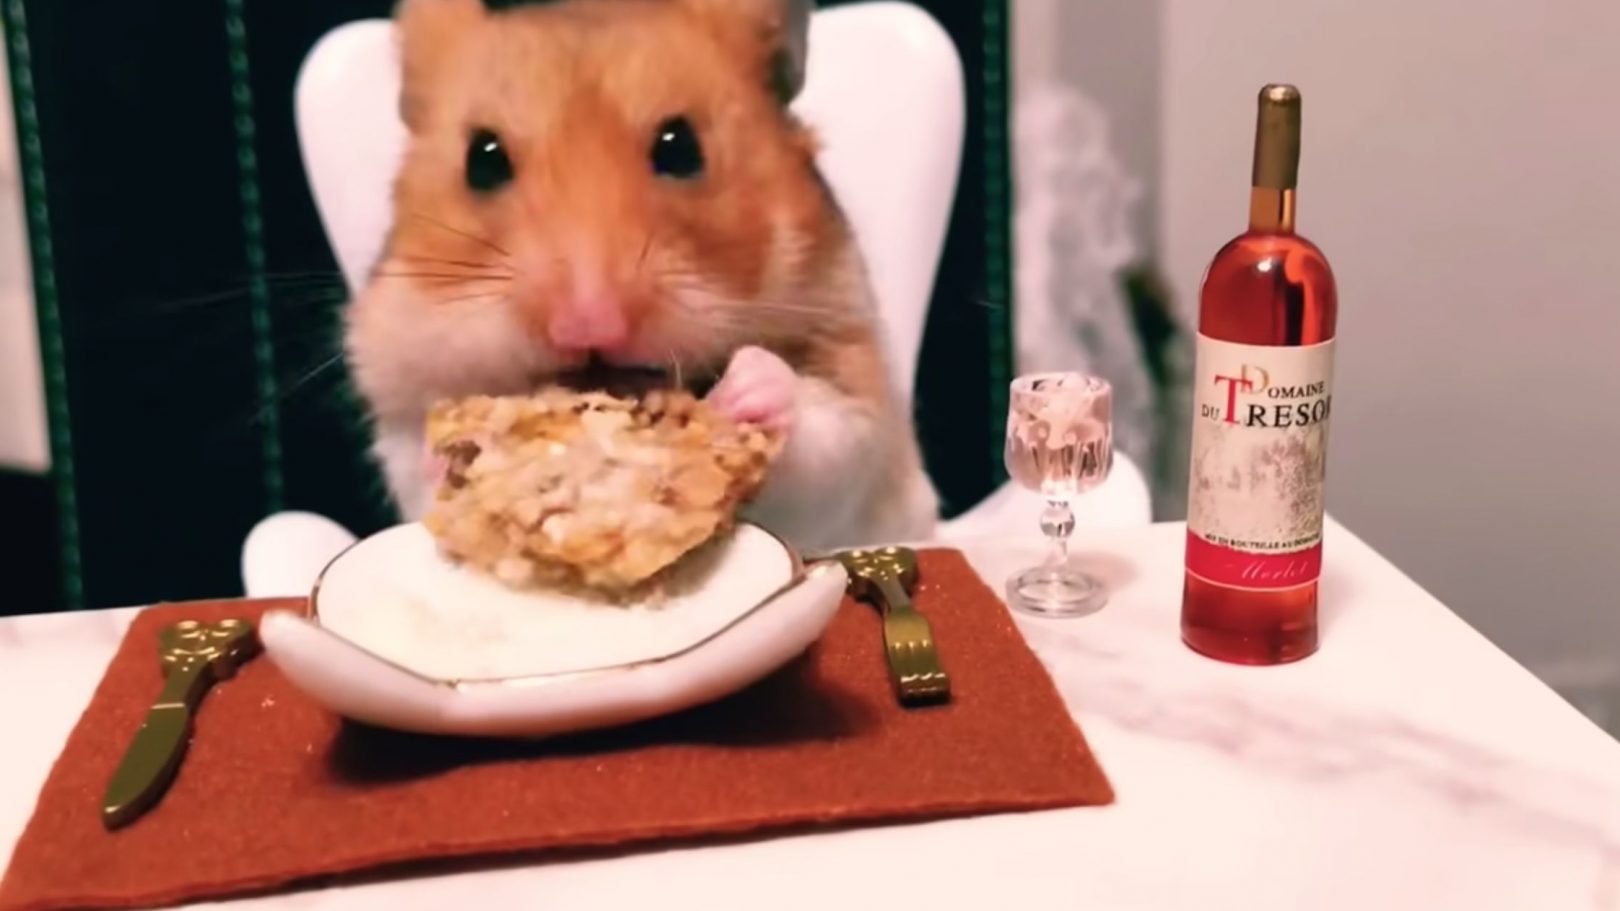 Christmas Eve Dinner Restaurants Near Me 2020 Tiny hamster enjoys lavish Christmas Eve dinner